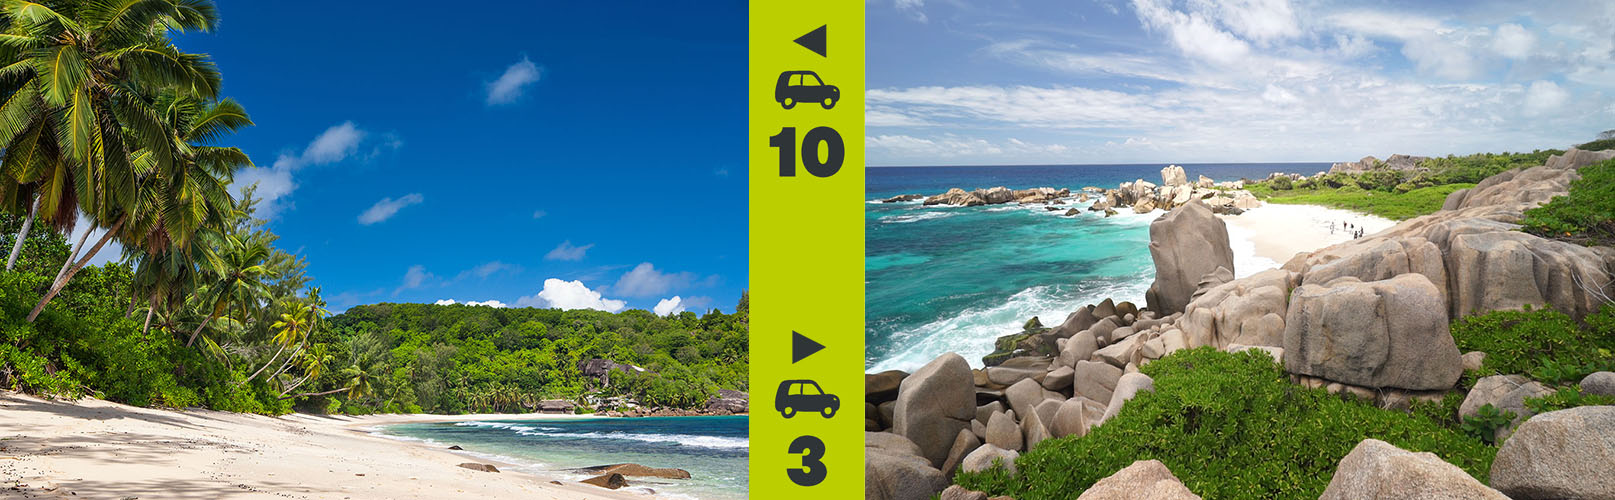 seychelles beach rating - the accessibility of a beach